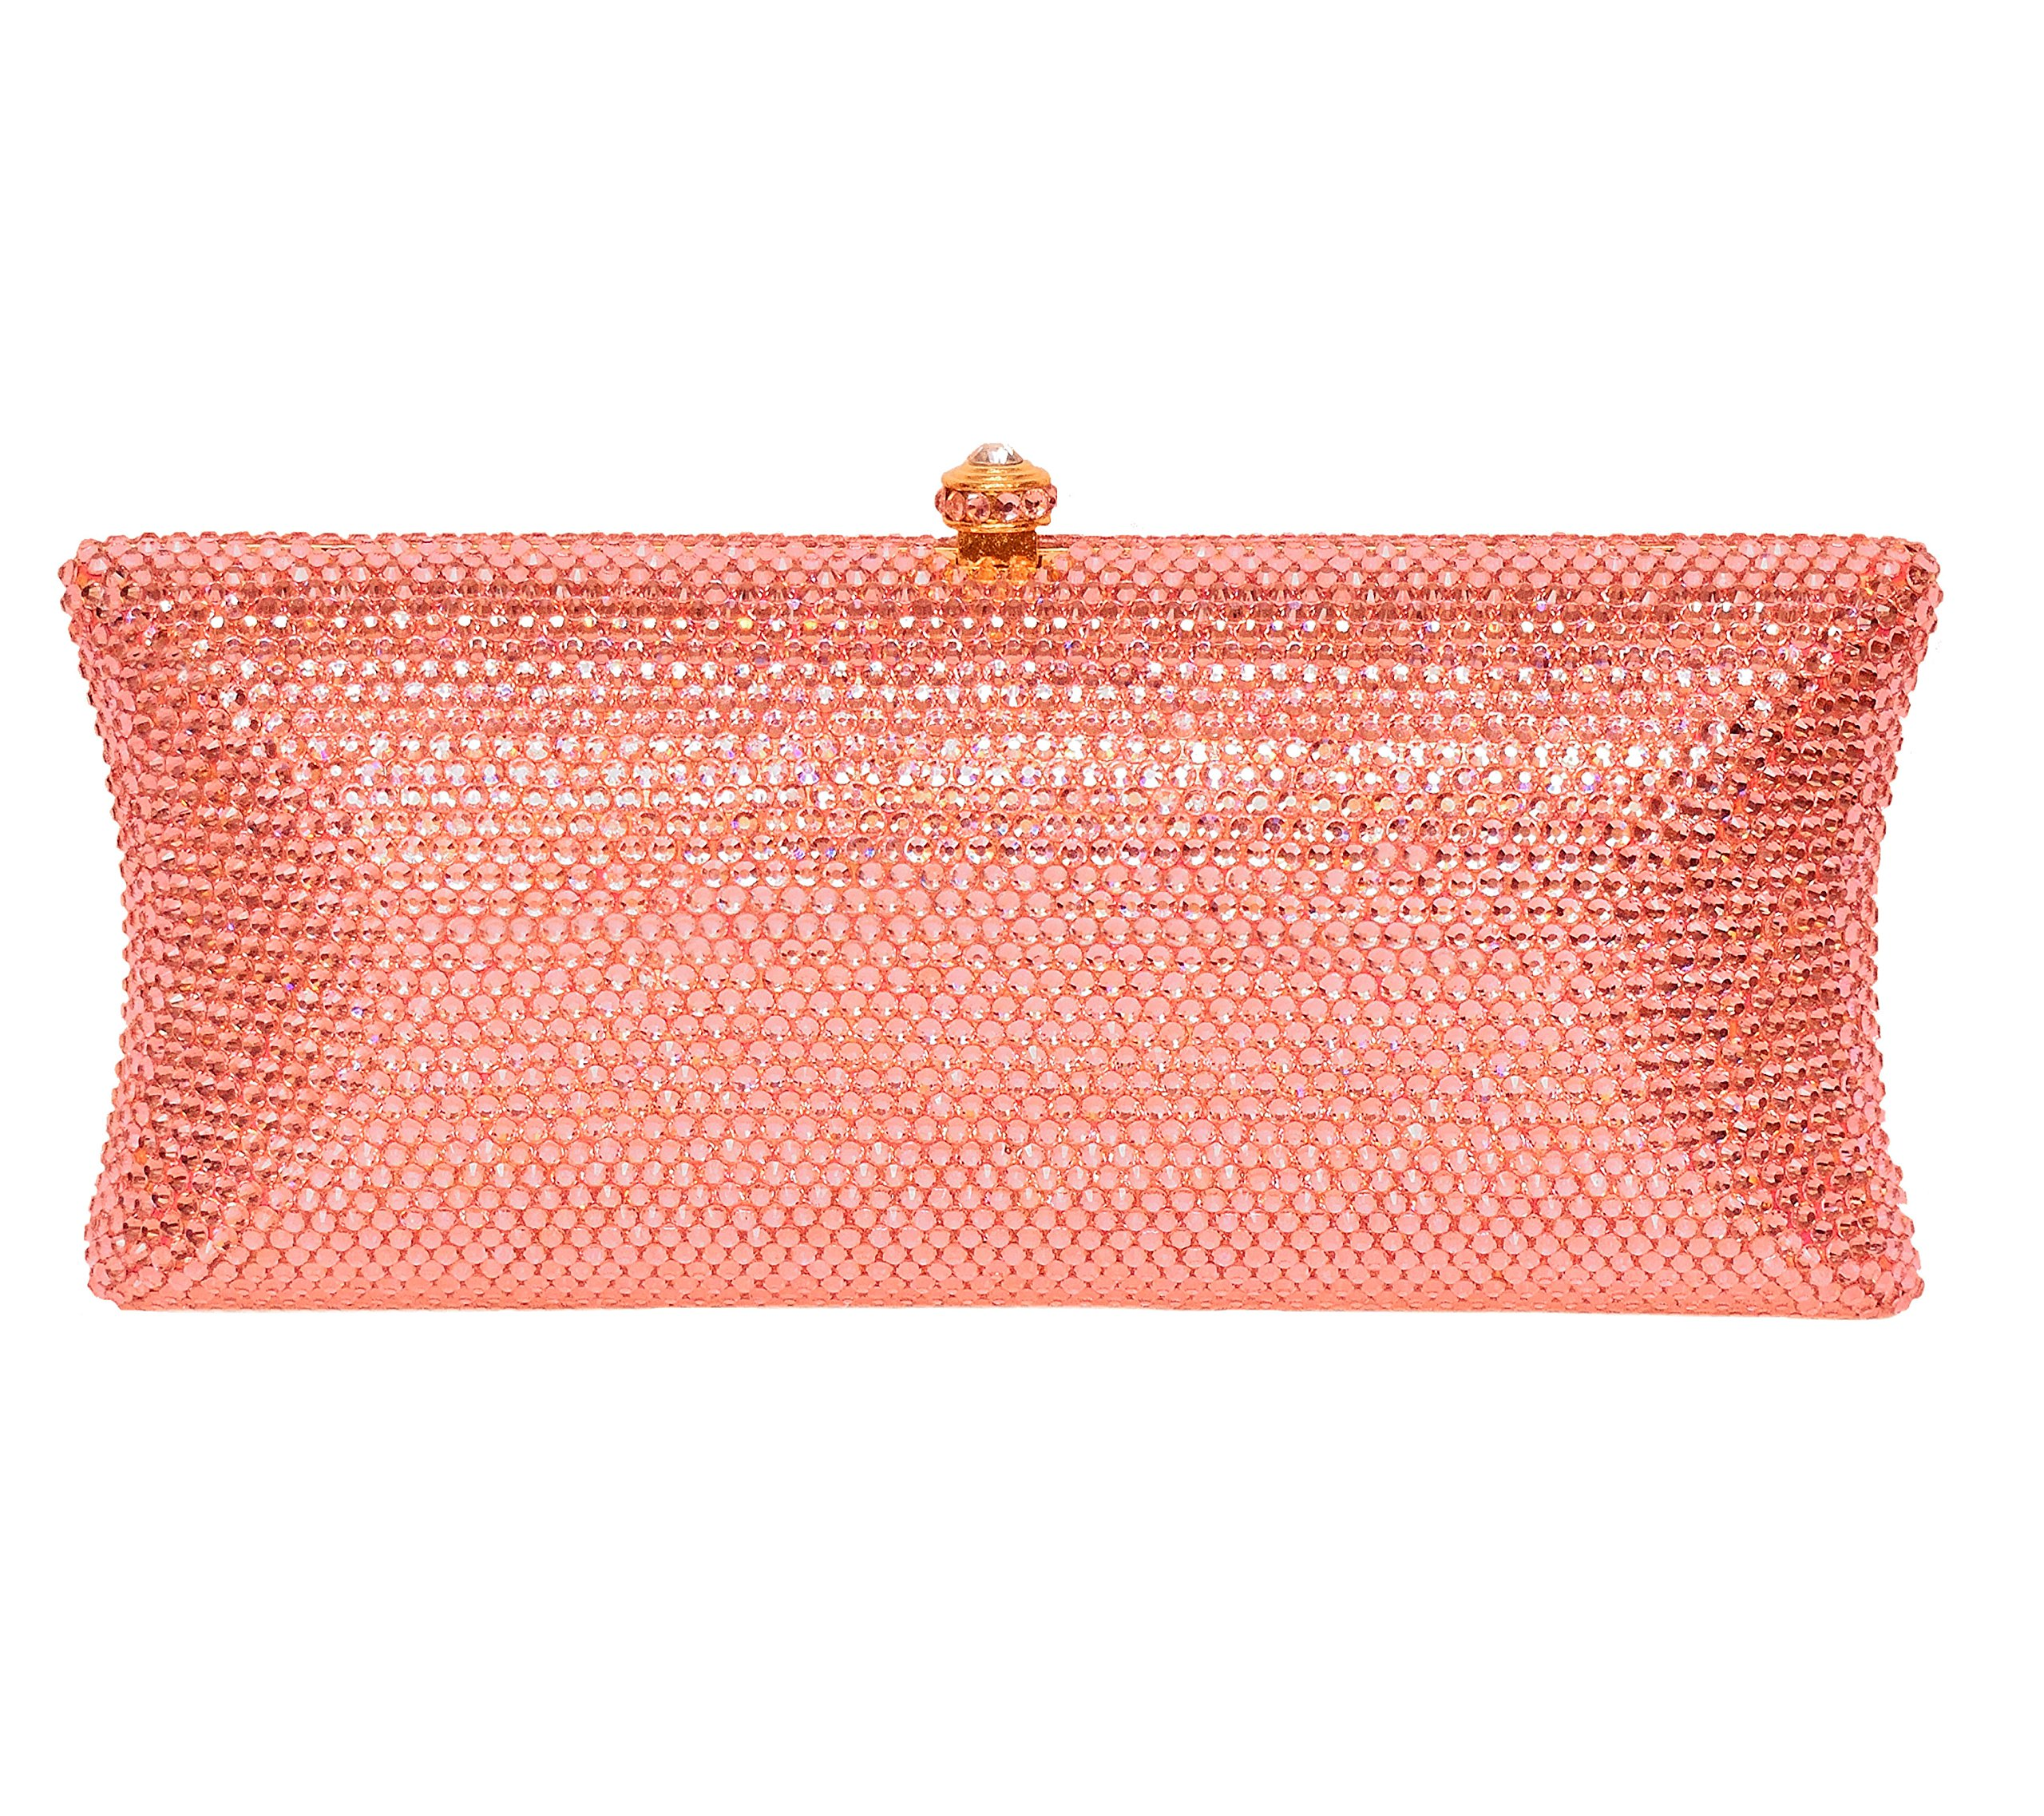 Crystal Bridal Clutch Holiday Party Evening Bag & Compact Mirror Gift Set Rose Gold Blush